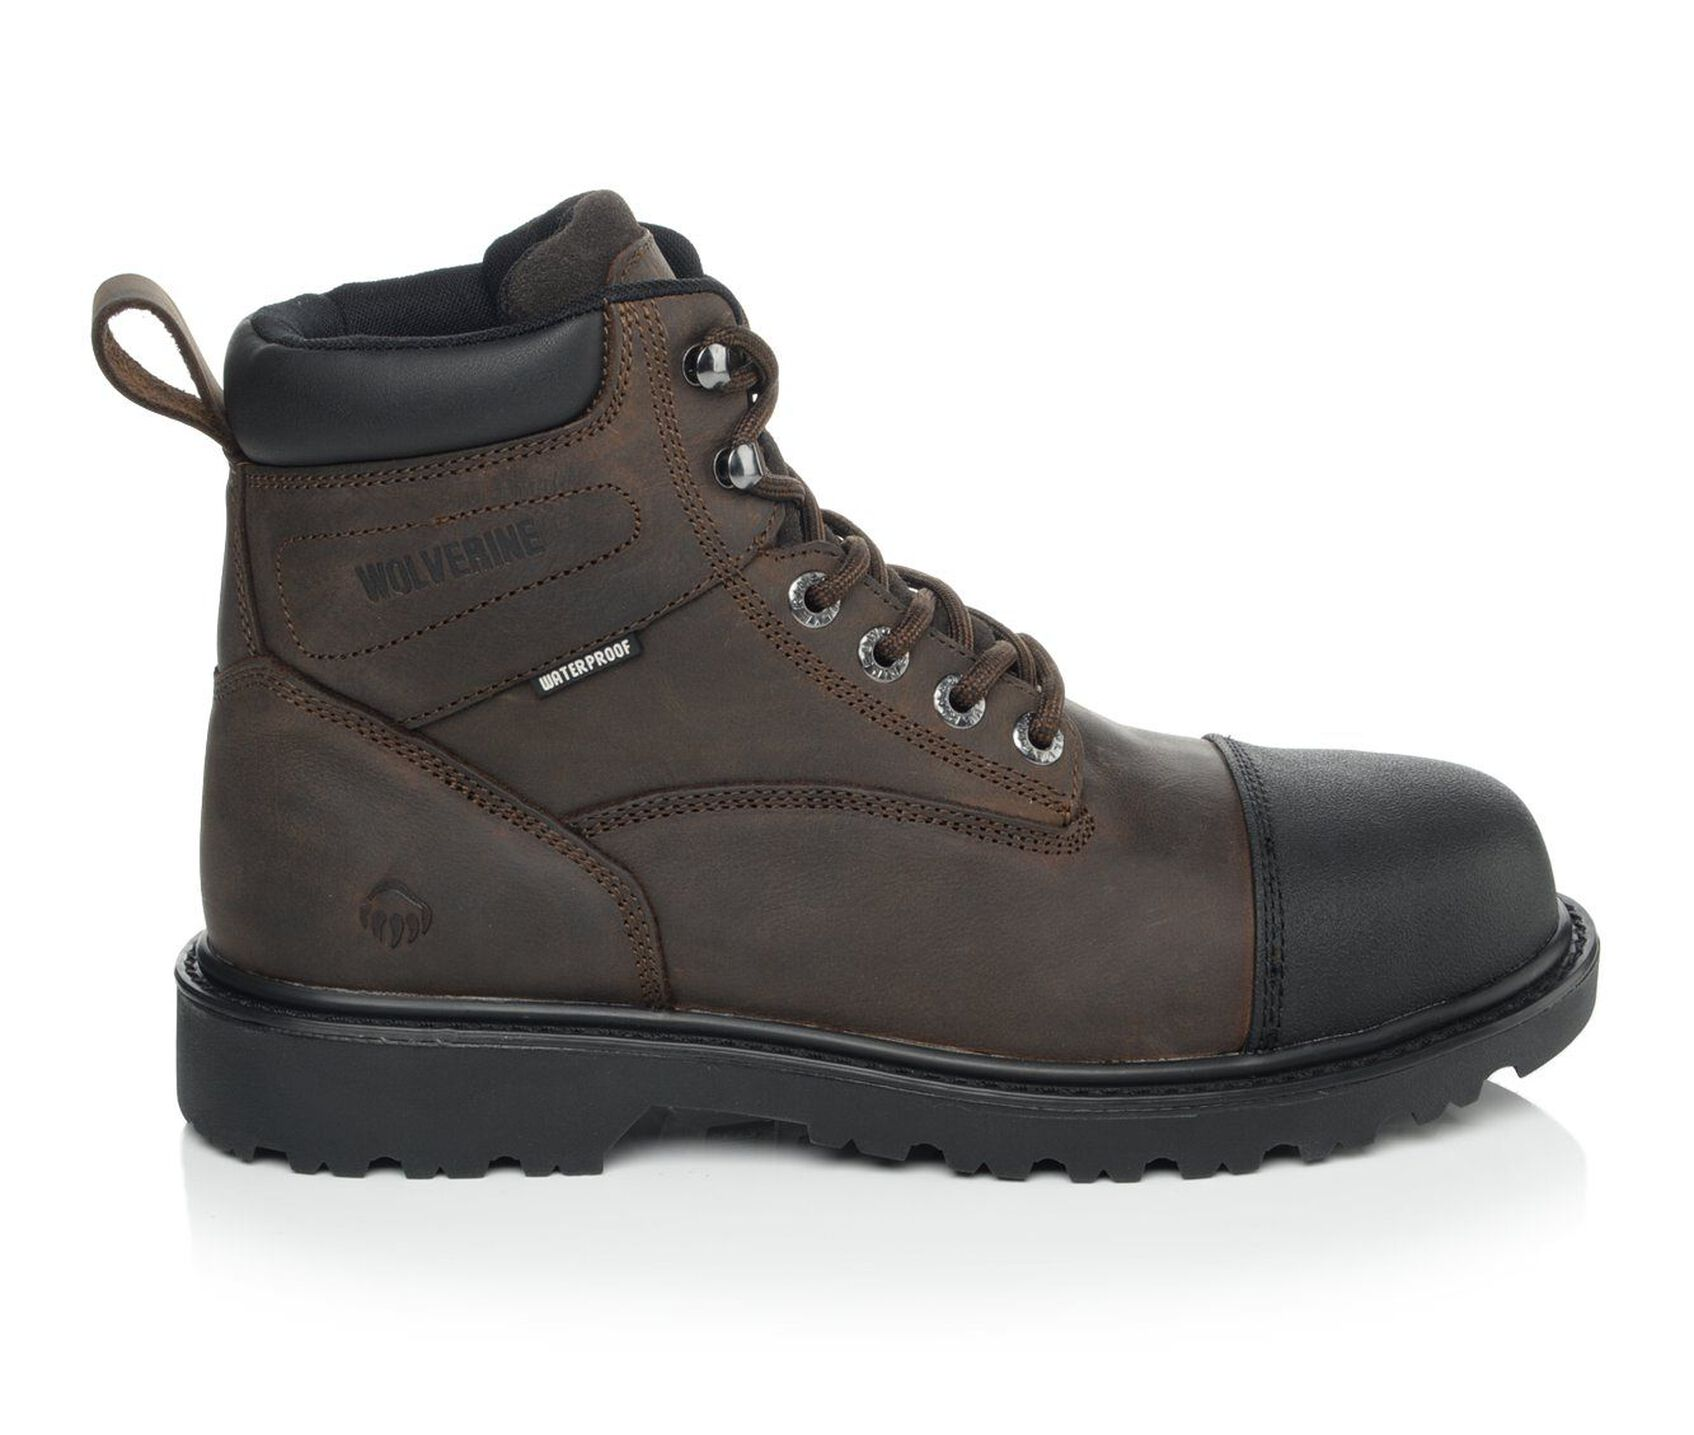 95e88970b79 Men's Wolverine Rig Steel Toe Work Boots | Shoe Carnival